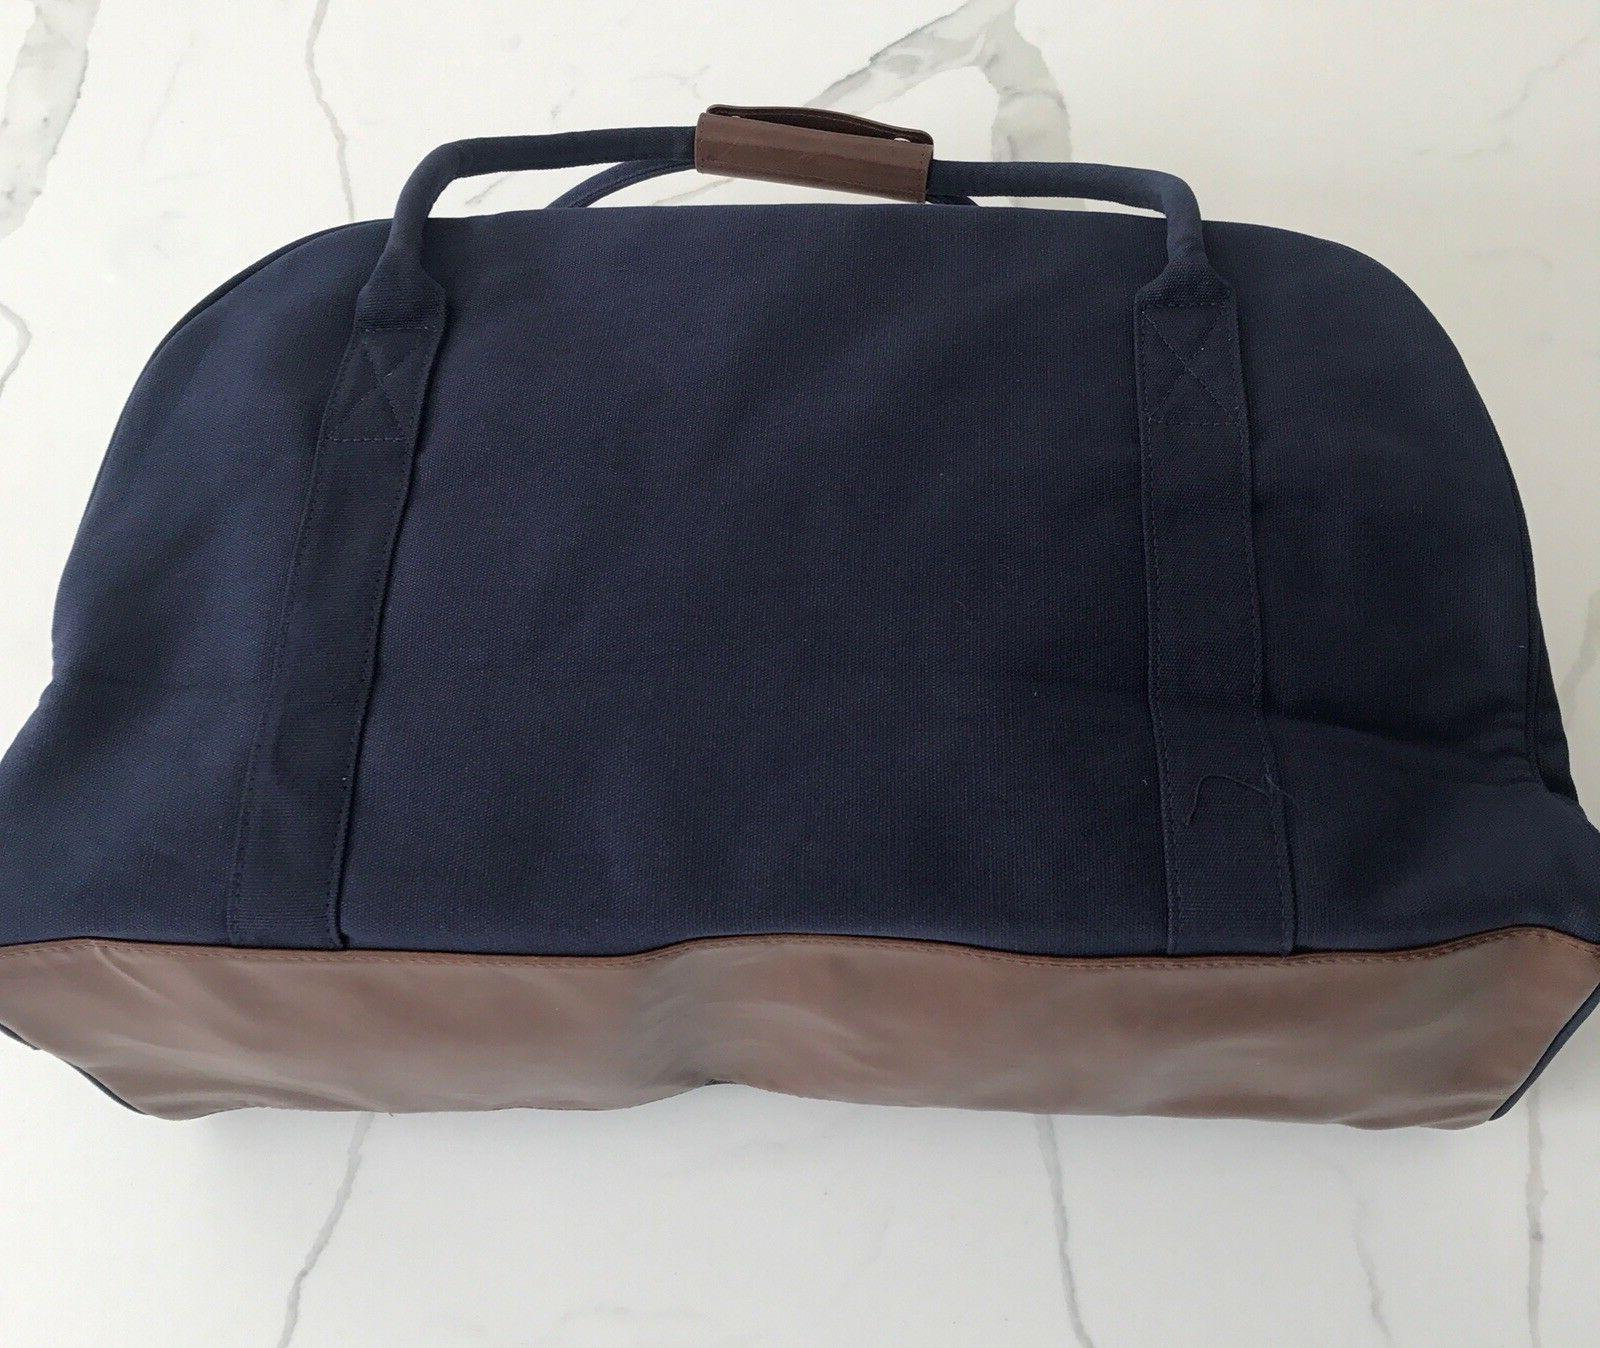 RALPH LAUREN polo navy blue duffle bag weekender carry-on travel gym